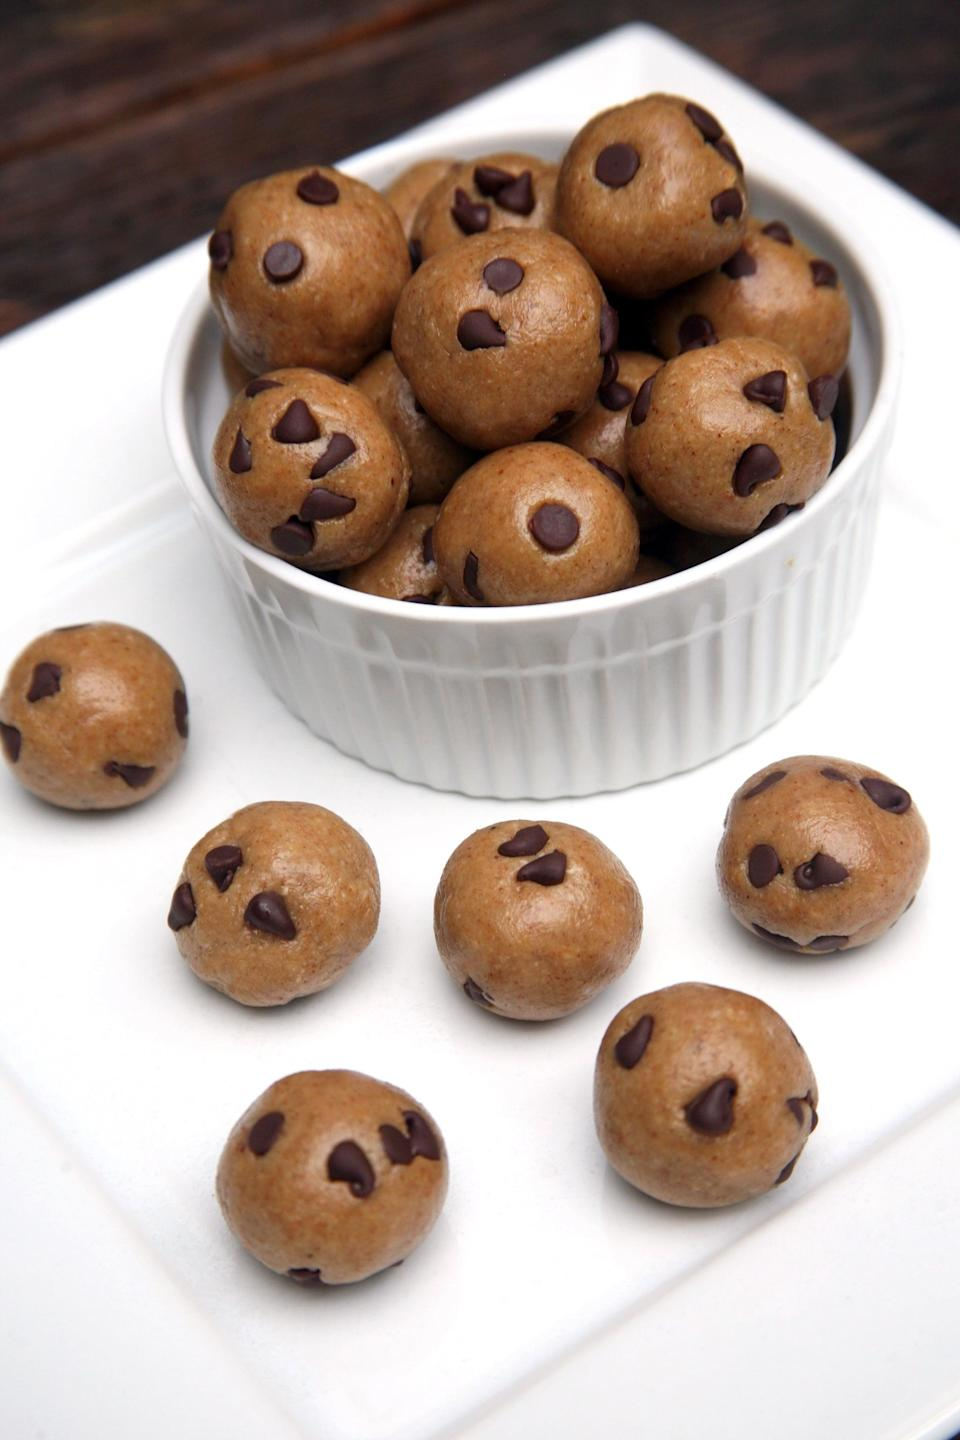 """<p>They taste just like cookie dough!</p> <p><strong>Get the recipe:</strong> <a href=""""https://www.popsugar.com/fitness/Chocolate-Chip-Cookie-Dough-Balls-41871192"""" class=""""link rapid-noclick-resp"""" rel=""""nofollow noopener"""" target=""""_blank"""" data-ylk=""""slk:vegan chocolate chip cookie dough balls"""">vegan chocolate chip cookie dough balls</a></p>"""